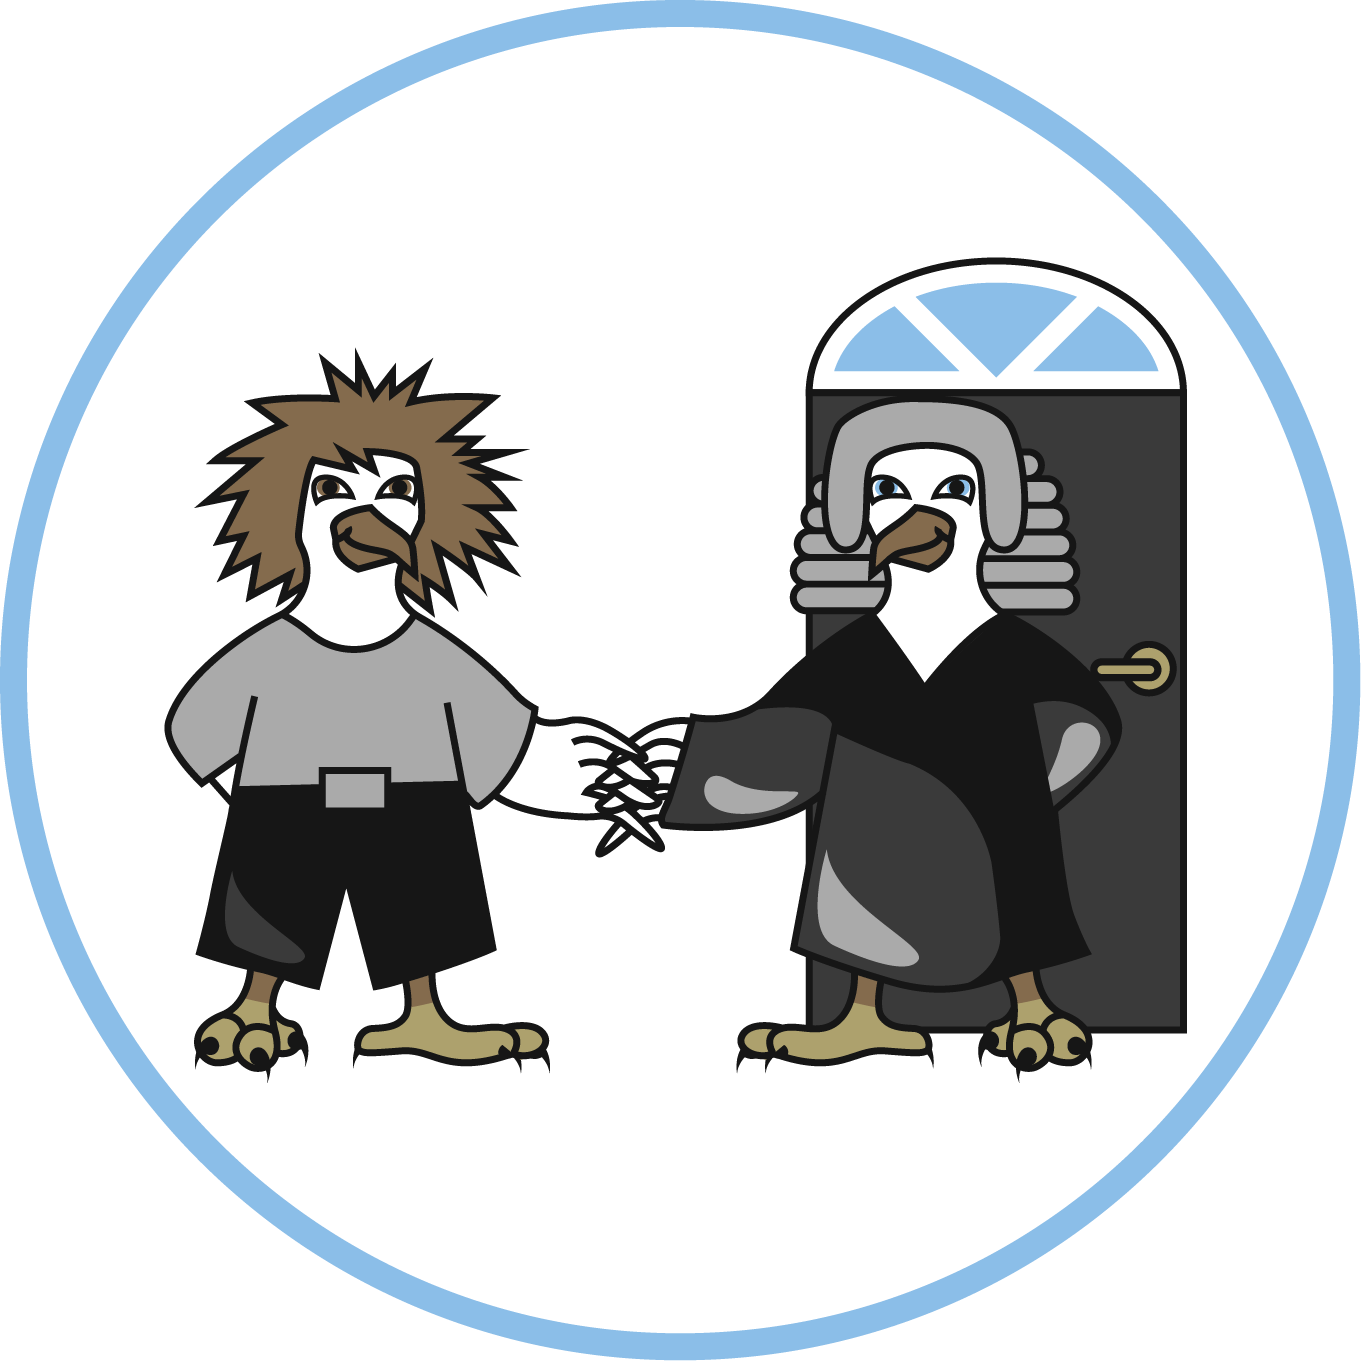 clip free stock The legal eagle neighbours. Supermarket clipart neighbourhood place